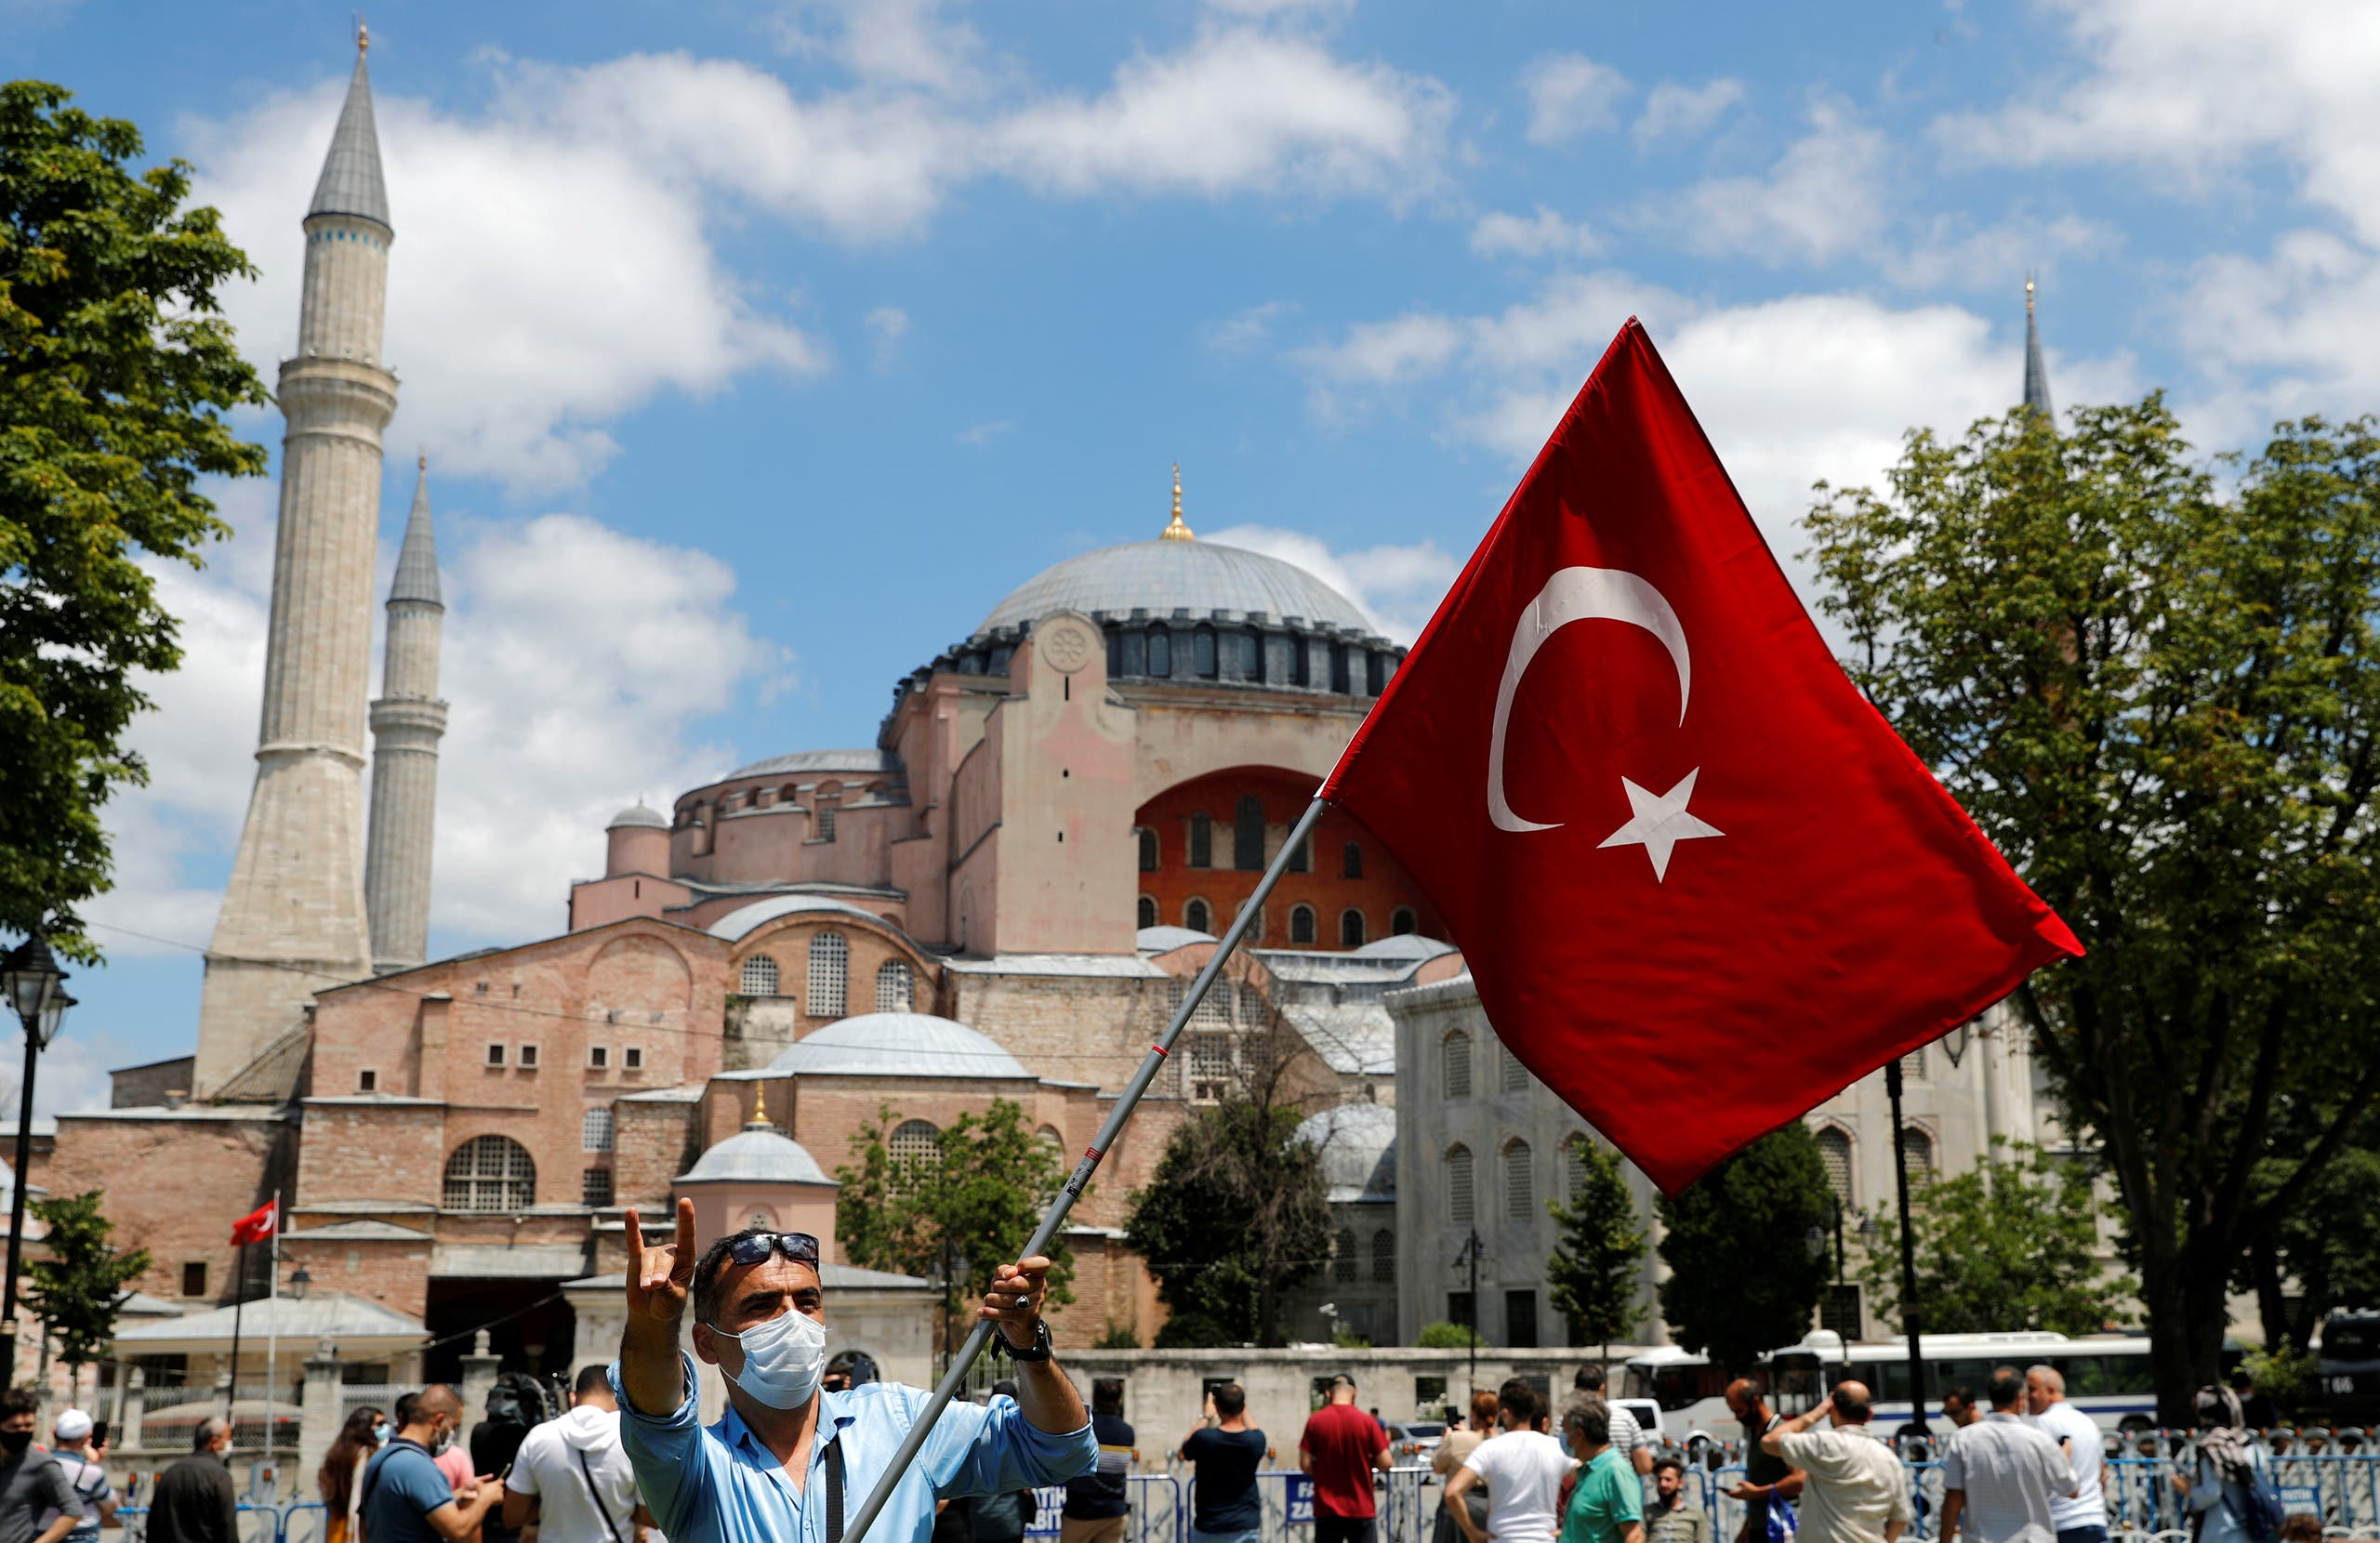 A man waves a Turkish flag as he makes the nationalist grey wolf sign in front of the Hagia Sophia in Istanbul on July 17, 2020. (Reuters)